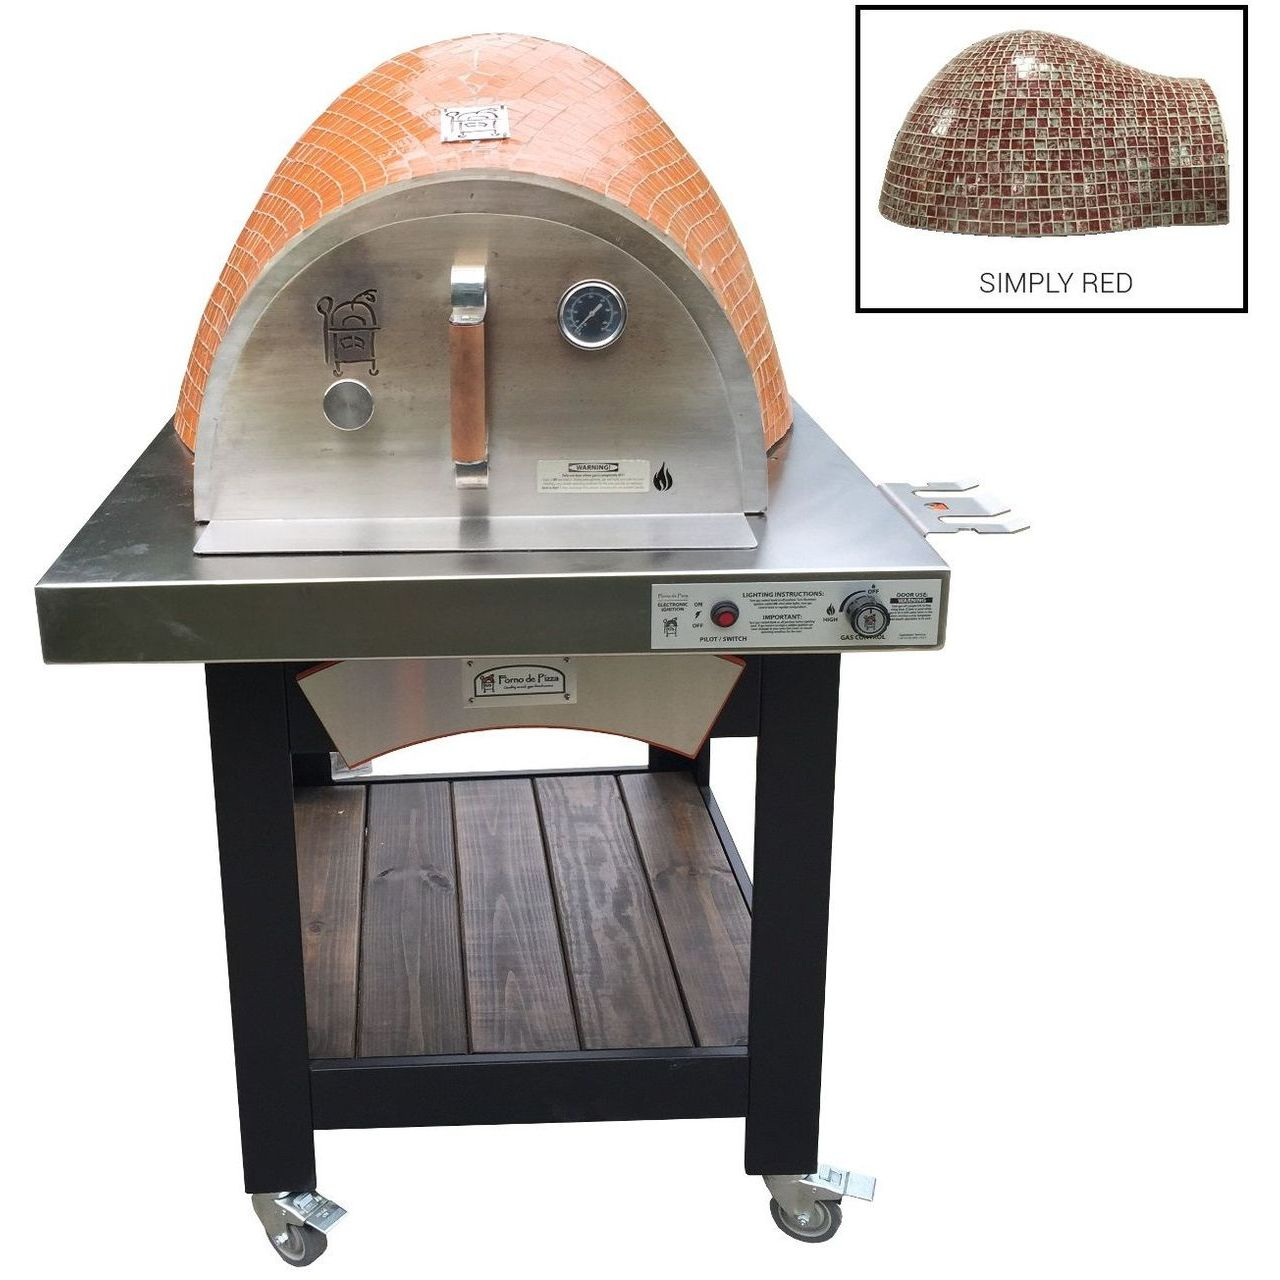 HPC Forno Hybrid Gas/Wood Oven With EI & Cart in Simply Red - LP